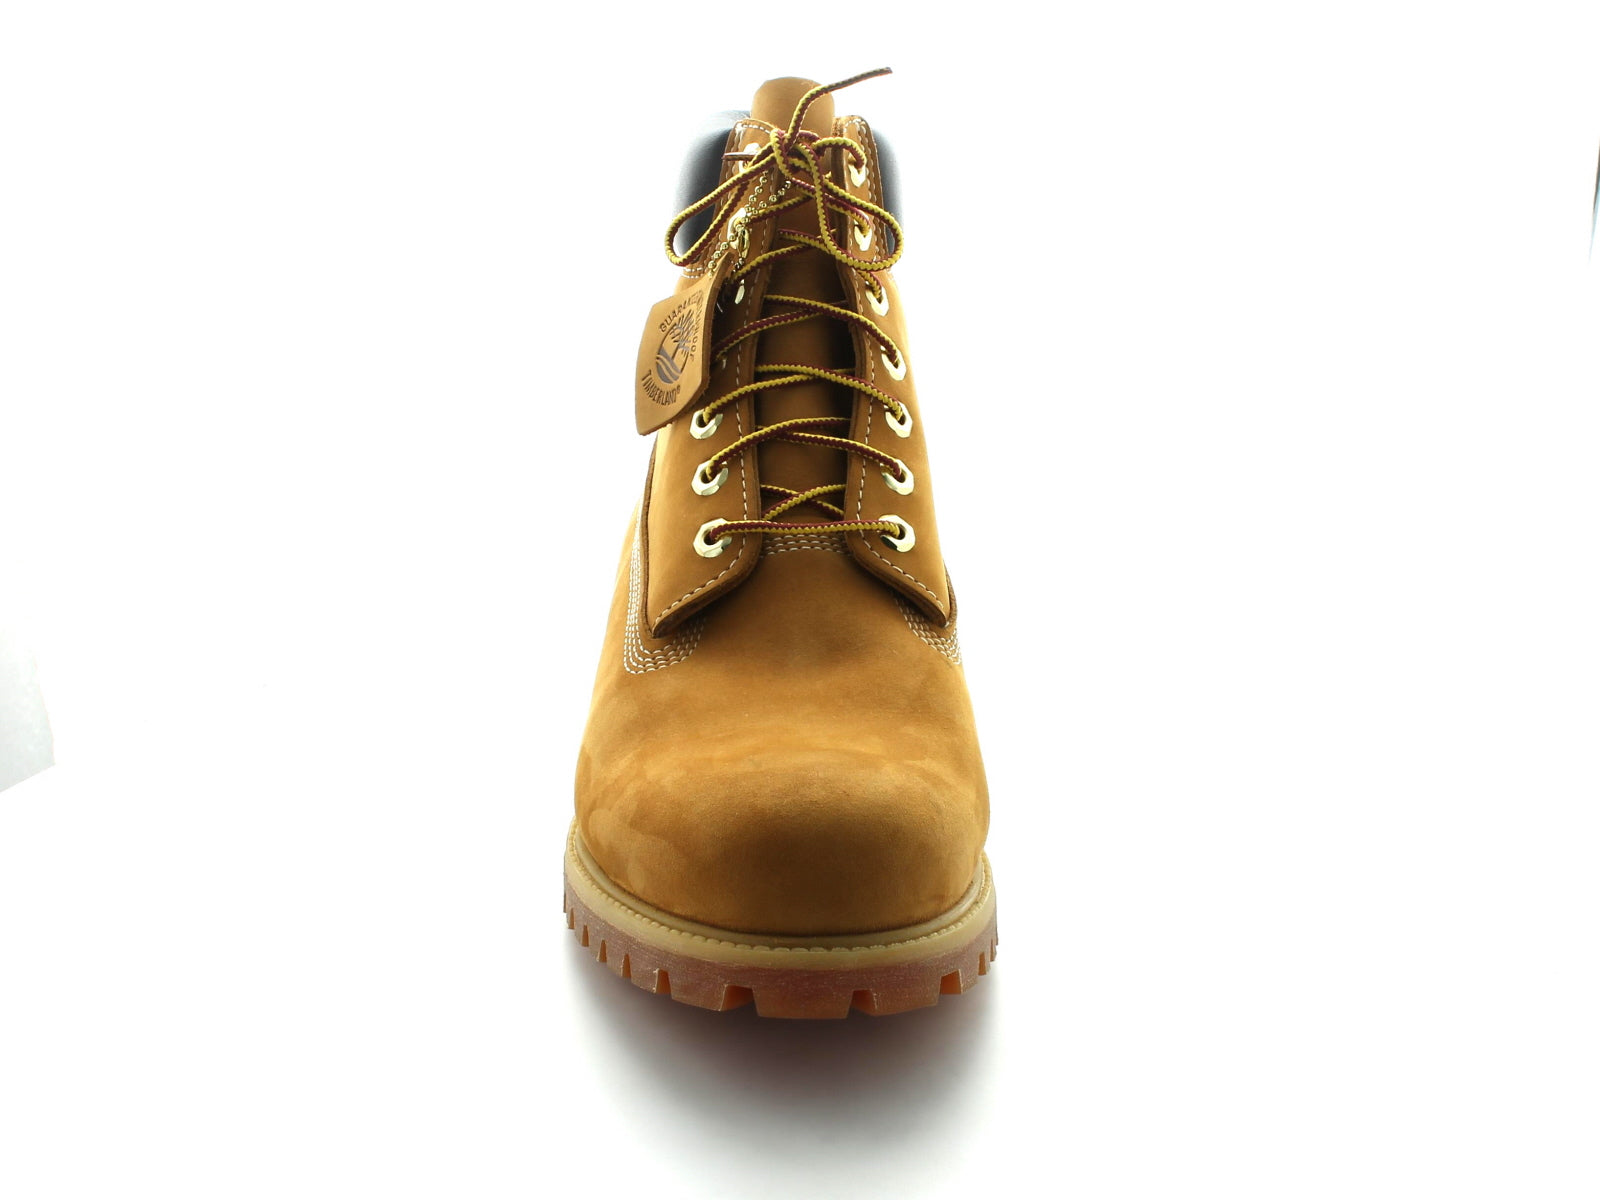 Timberland 10061 Waterproof in Wheat front view